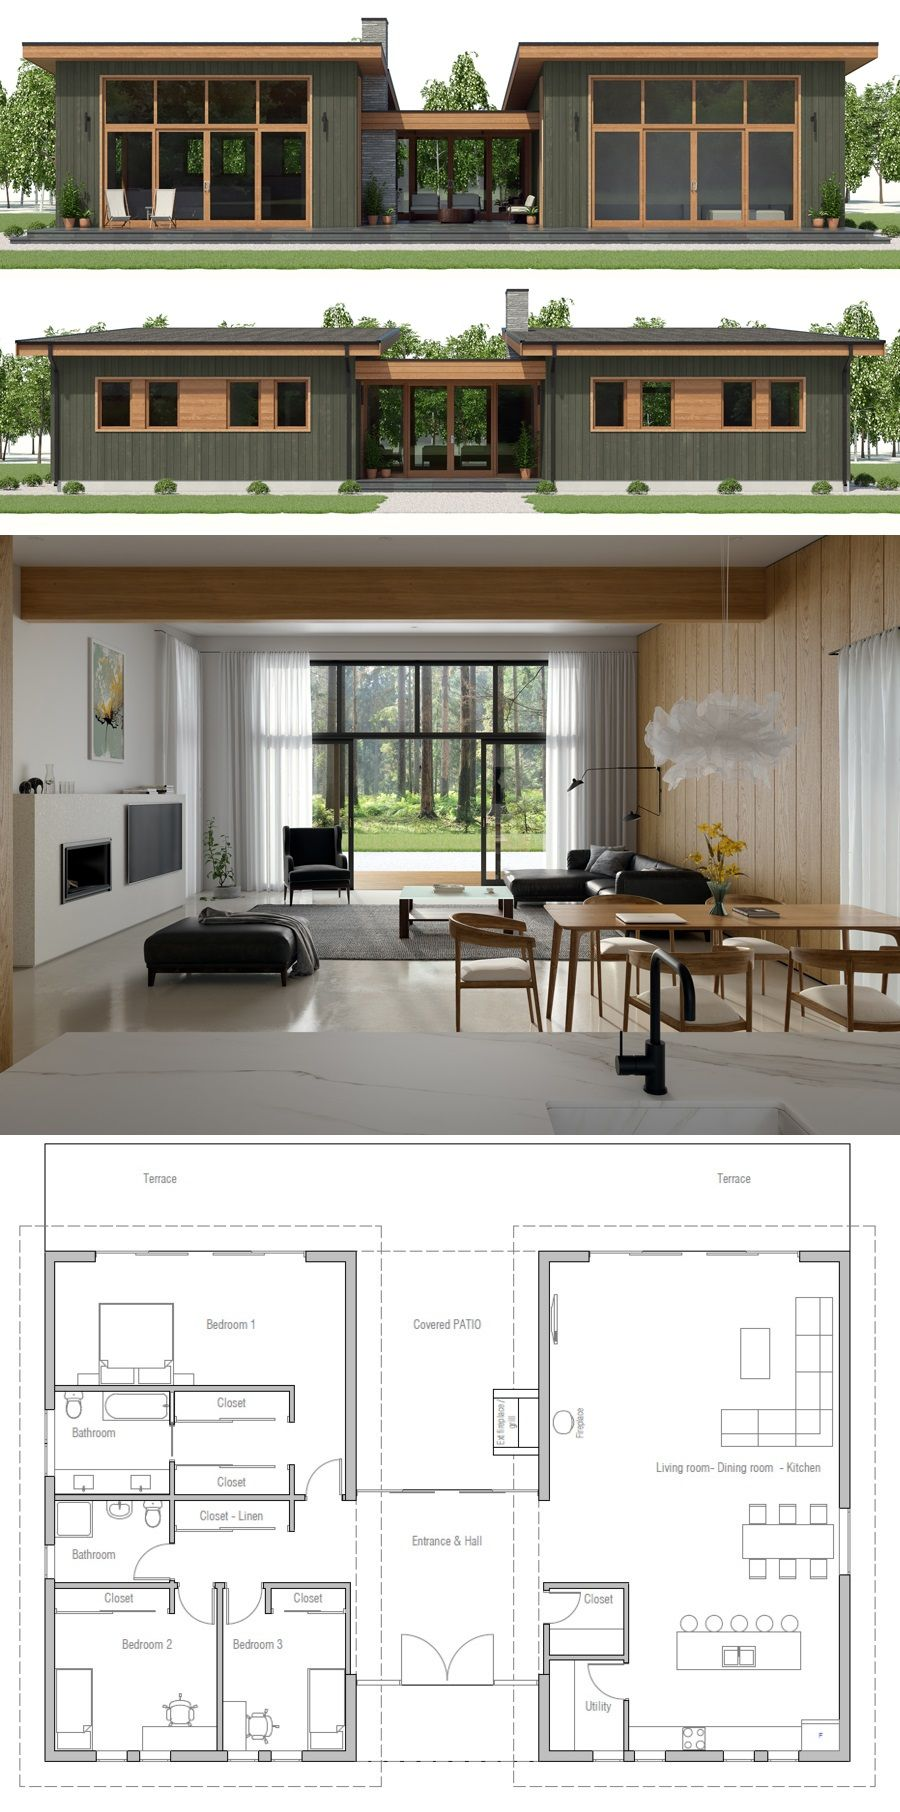 House plan ch also best plans narrow lot images in dream rh pinterest